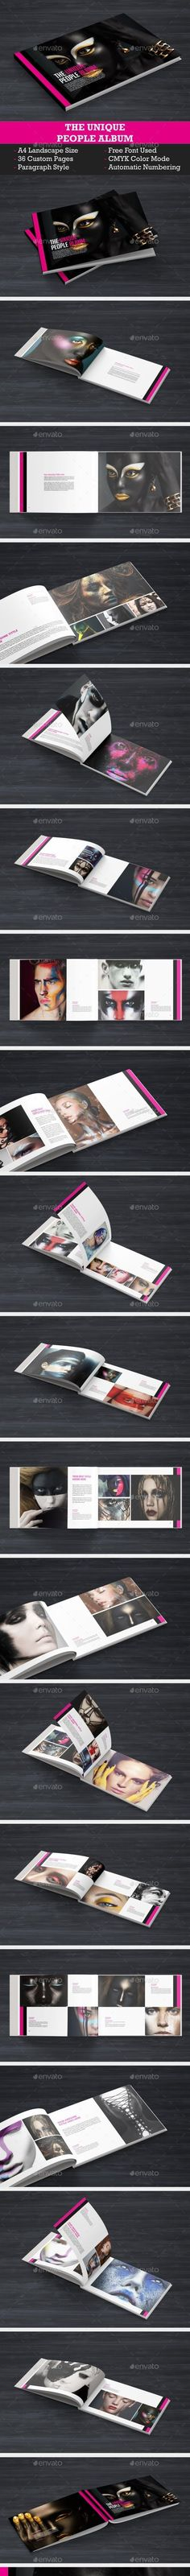 Buy Unique Look Book by Ken_Zie on GraphicRiver. Unique Magazine This is a professional and clean InDesign Magazine template that can be used for any type of industry. Print Magazine, Magazine Design, Indesign Magazine Templates, Print Design, Graphic Design, Print Templates, Unique, Books, Magazines